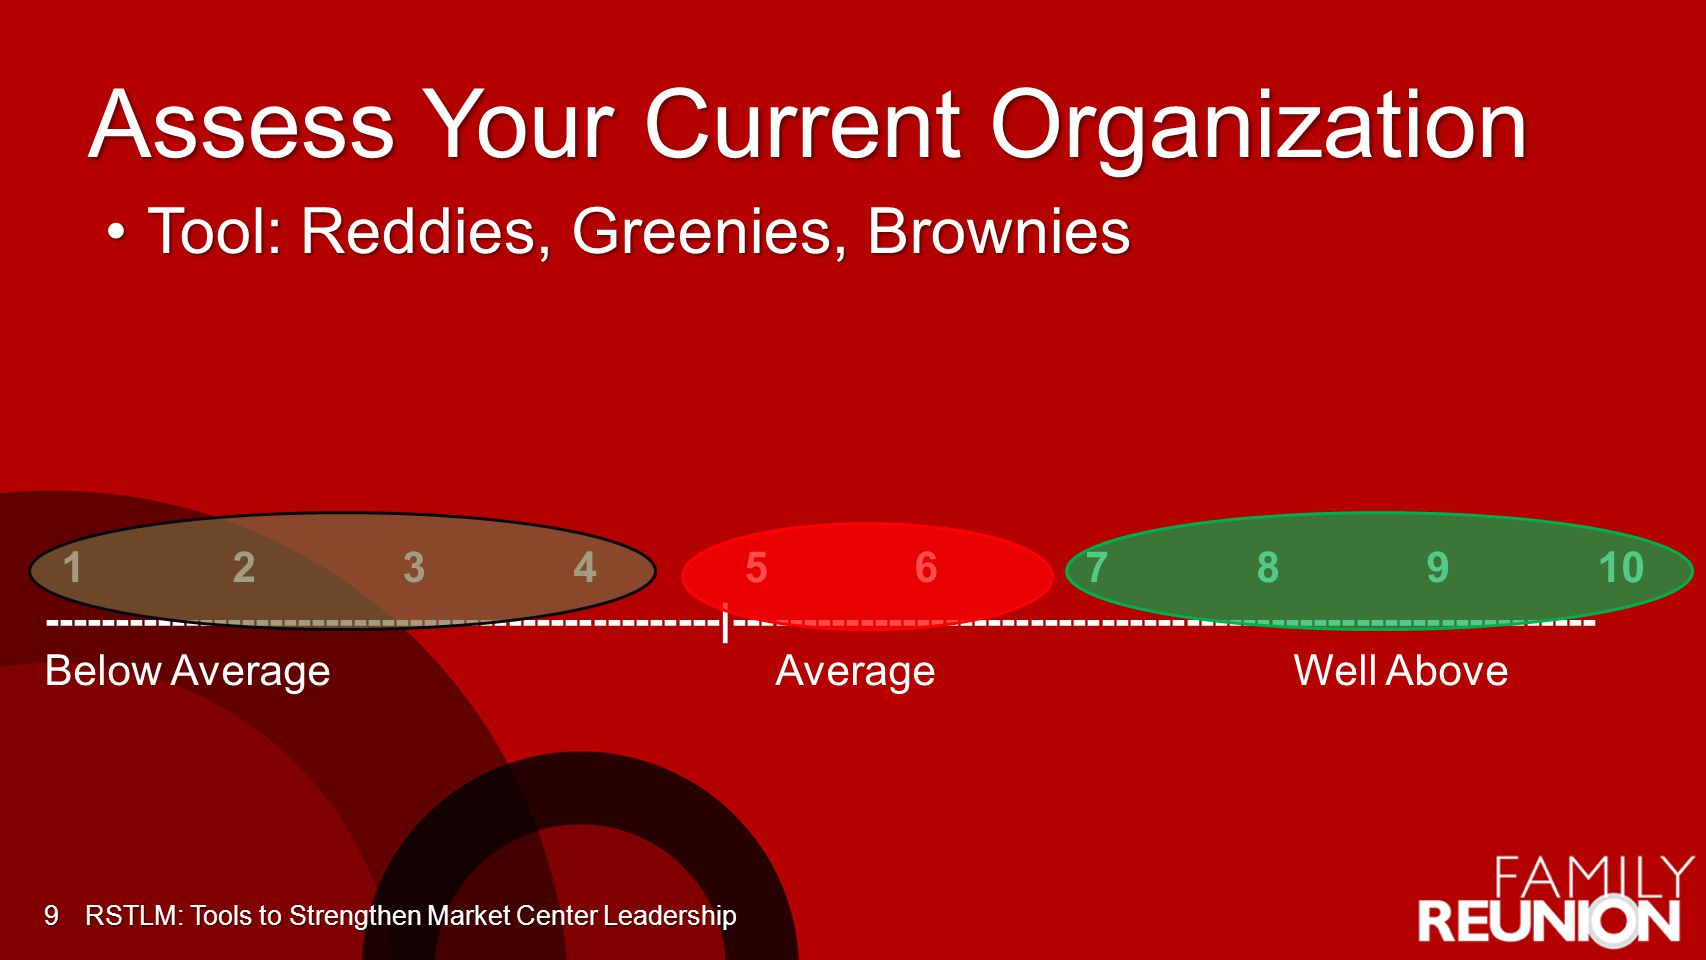 Assess Your Current Organization